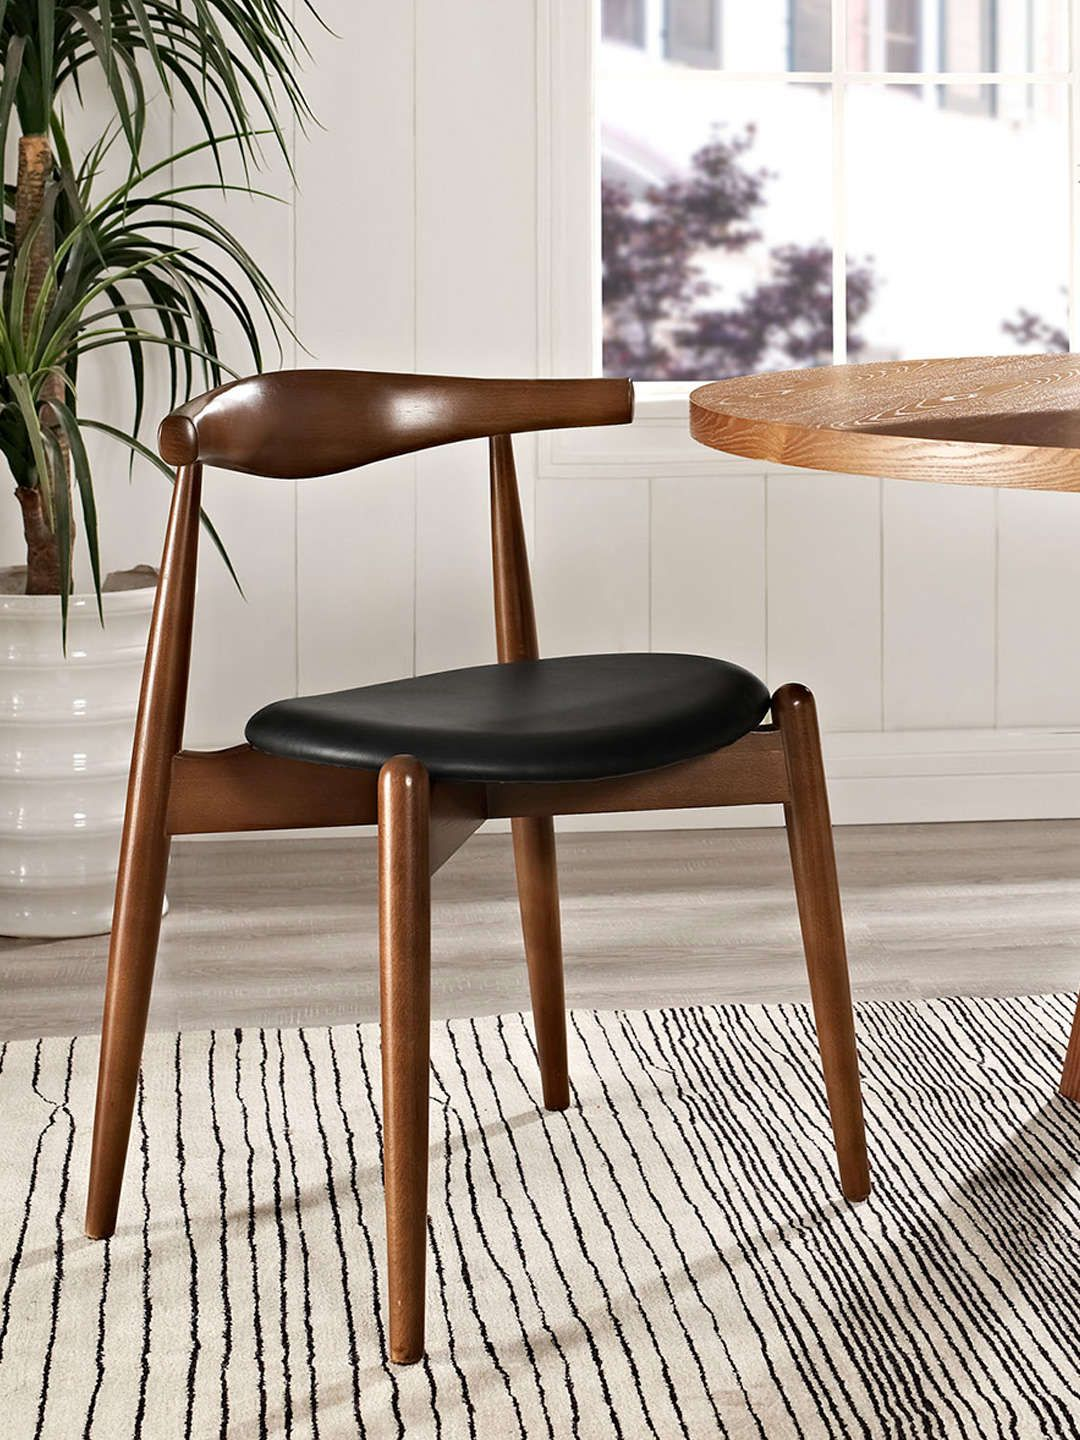 pearl river modern ny - stalwart dining side chair by pearl river modern ny take a seat